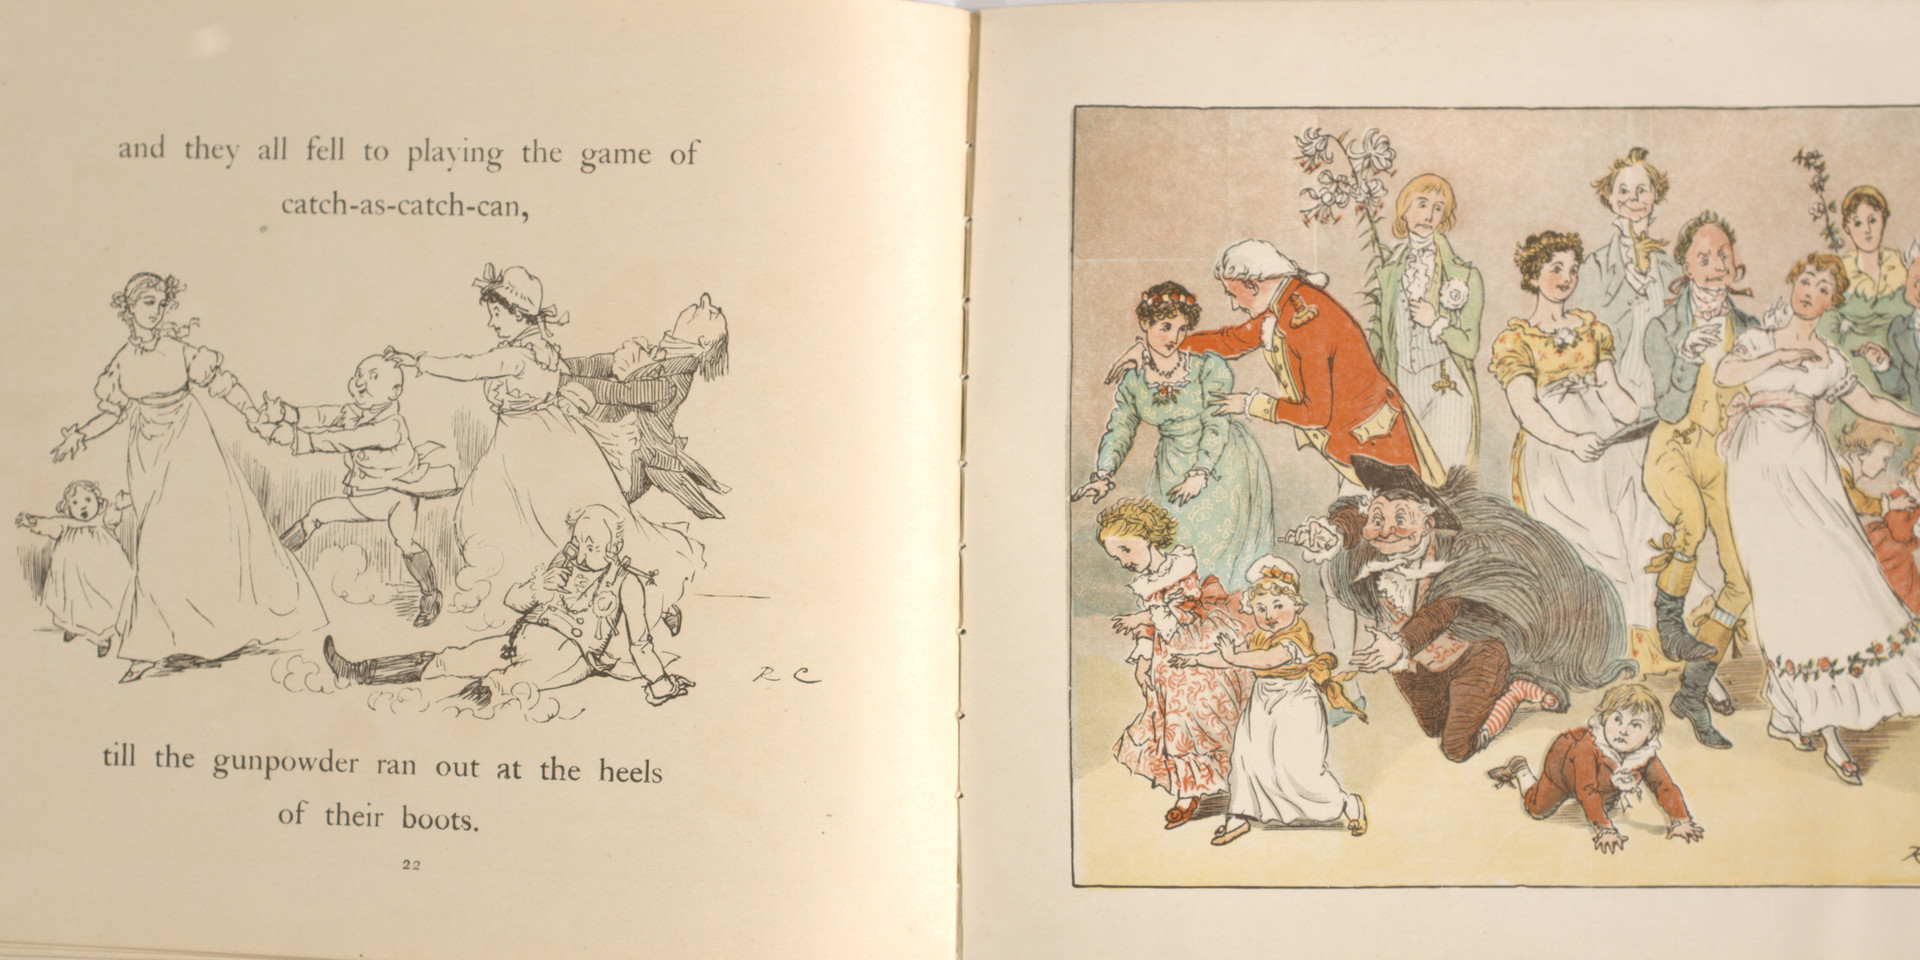 Caldecott, Randolph. The Great Panjandrum Himself. Frederick Warne & Co., 1855. p.19-20. Ryerson University Library and Archives.